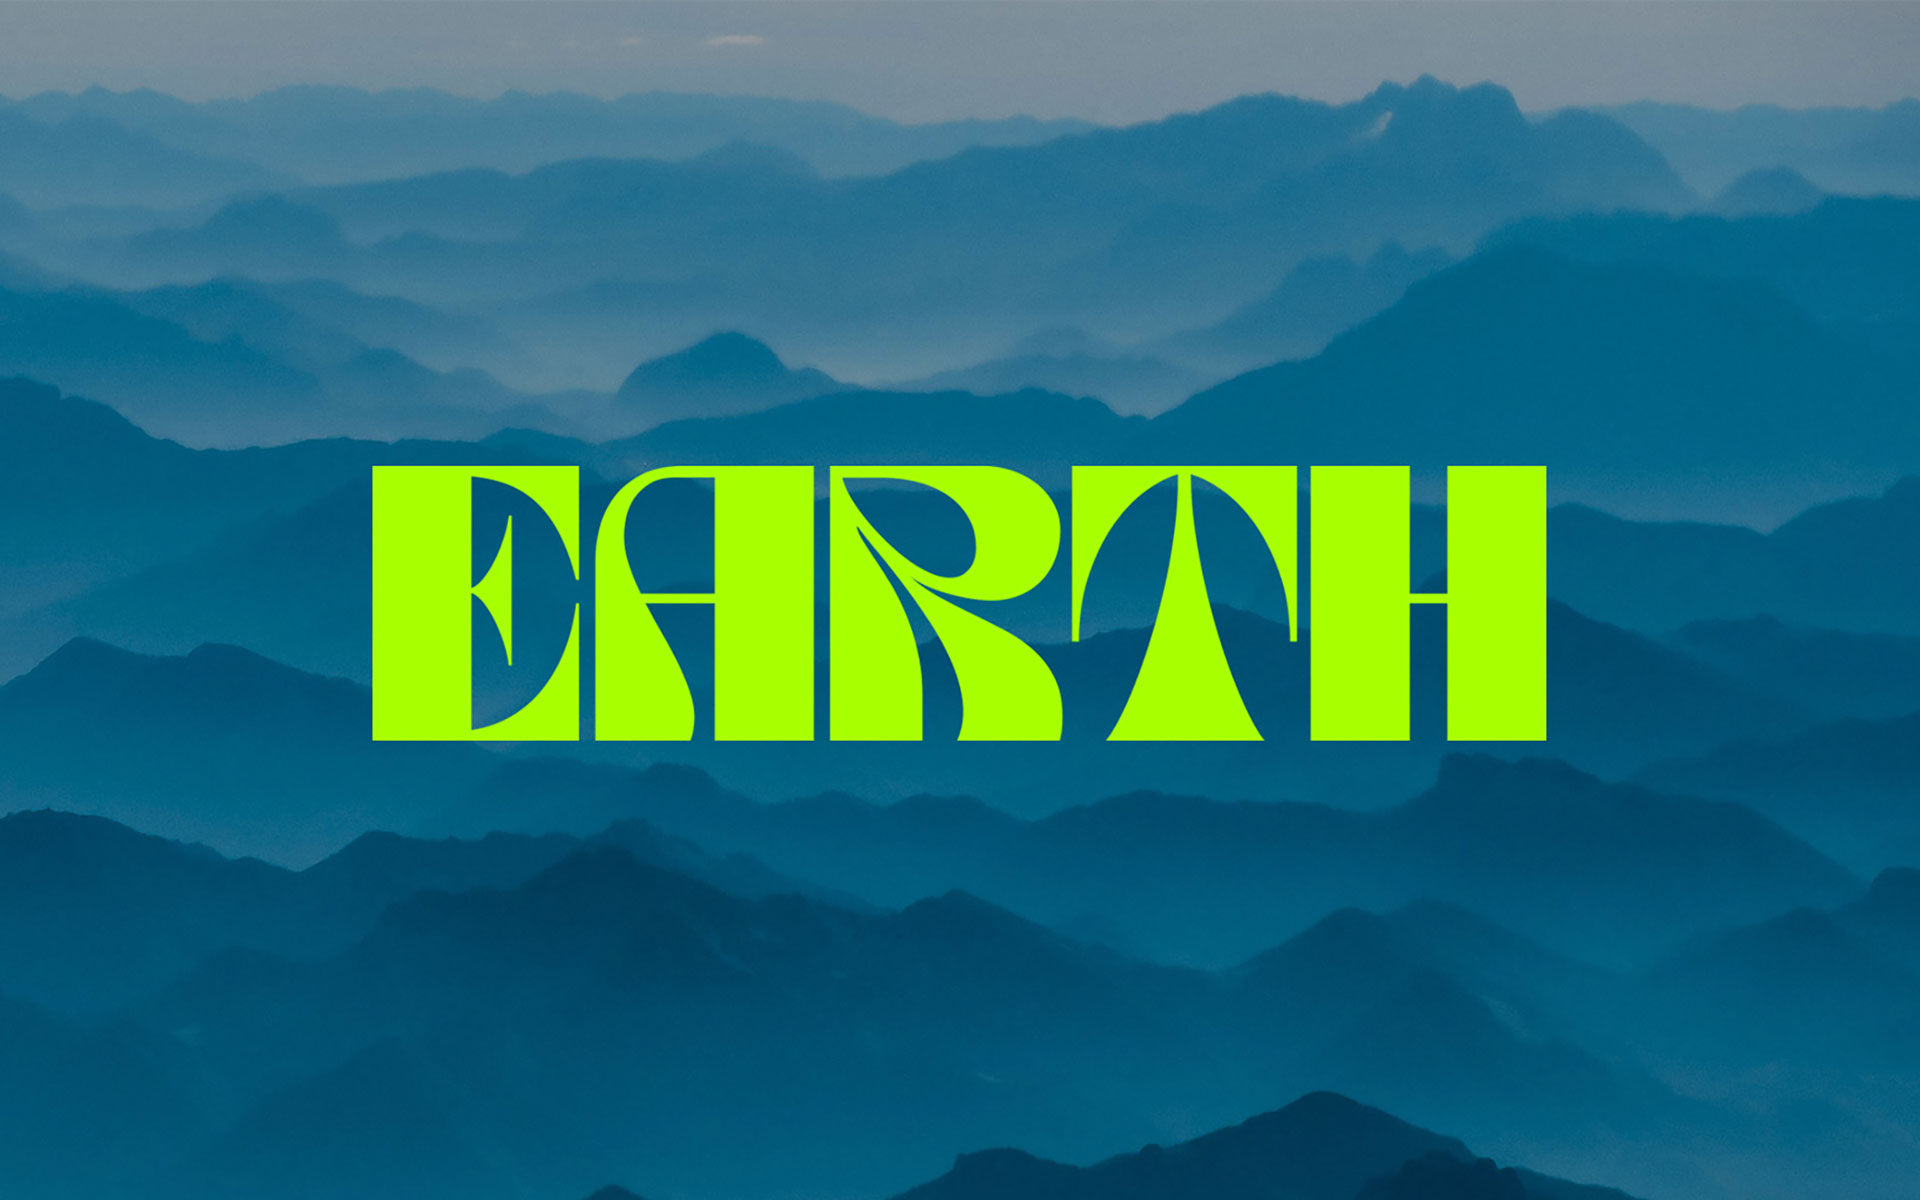 Creatd, Inc. Announces the Launch of Vocal's Newest Owned-and-Operated Community, 'Earth'